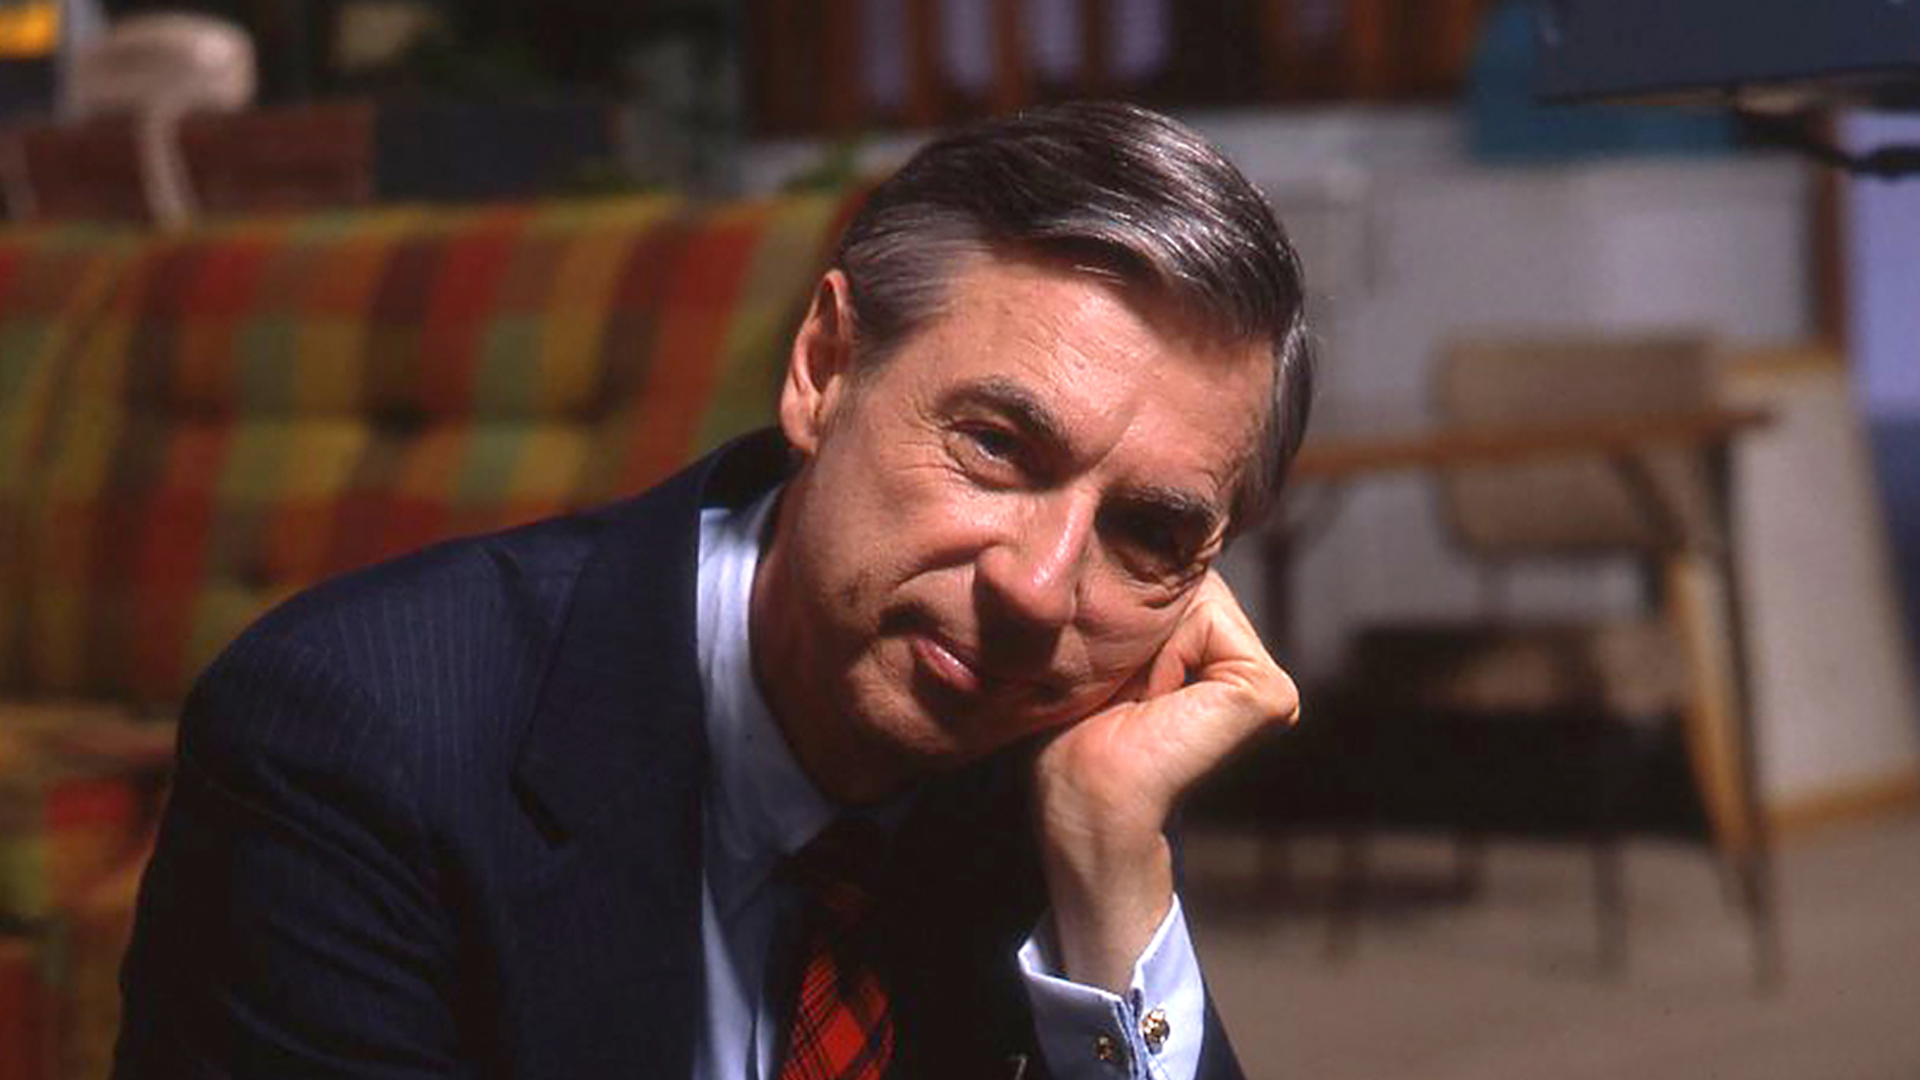 'Won't You Be My Neighbor?' to get one-night-only PBS screening